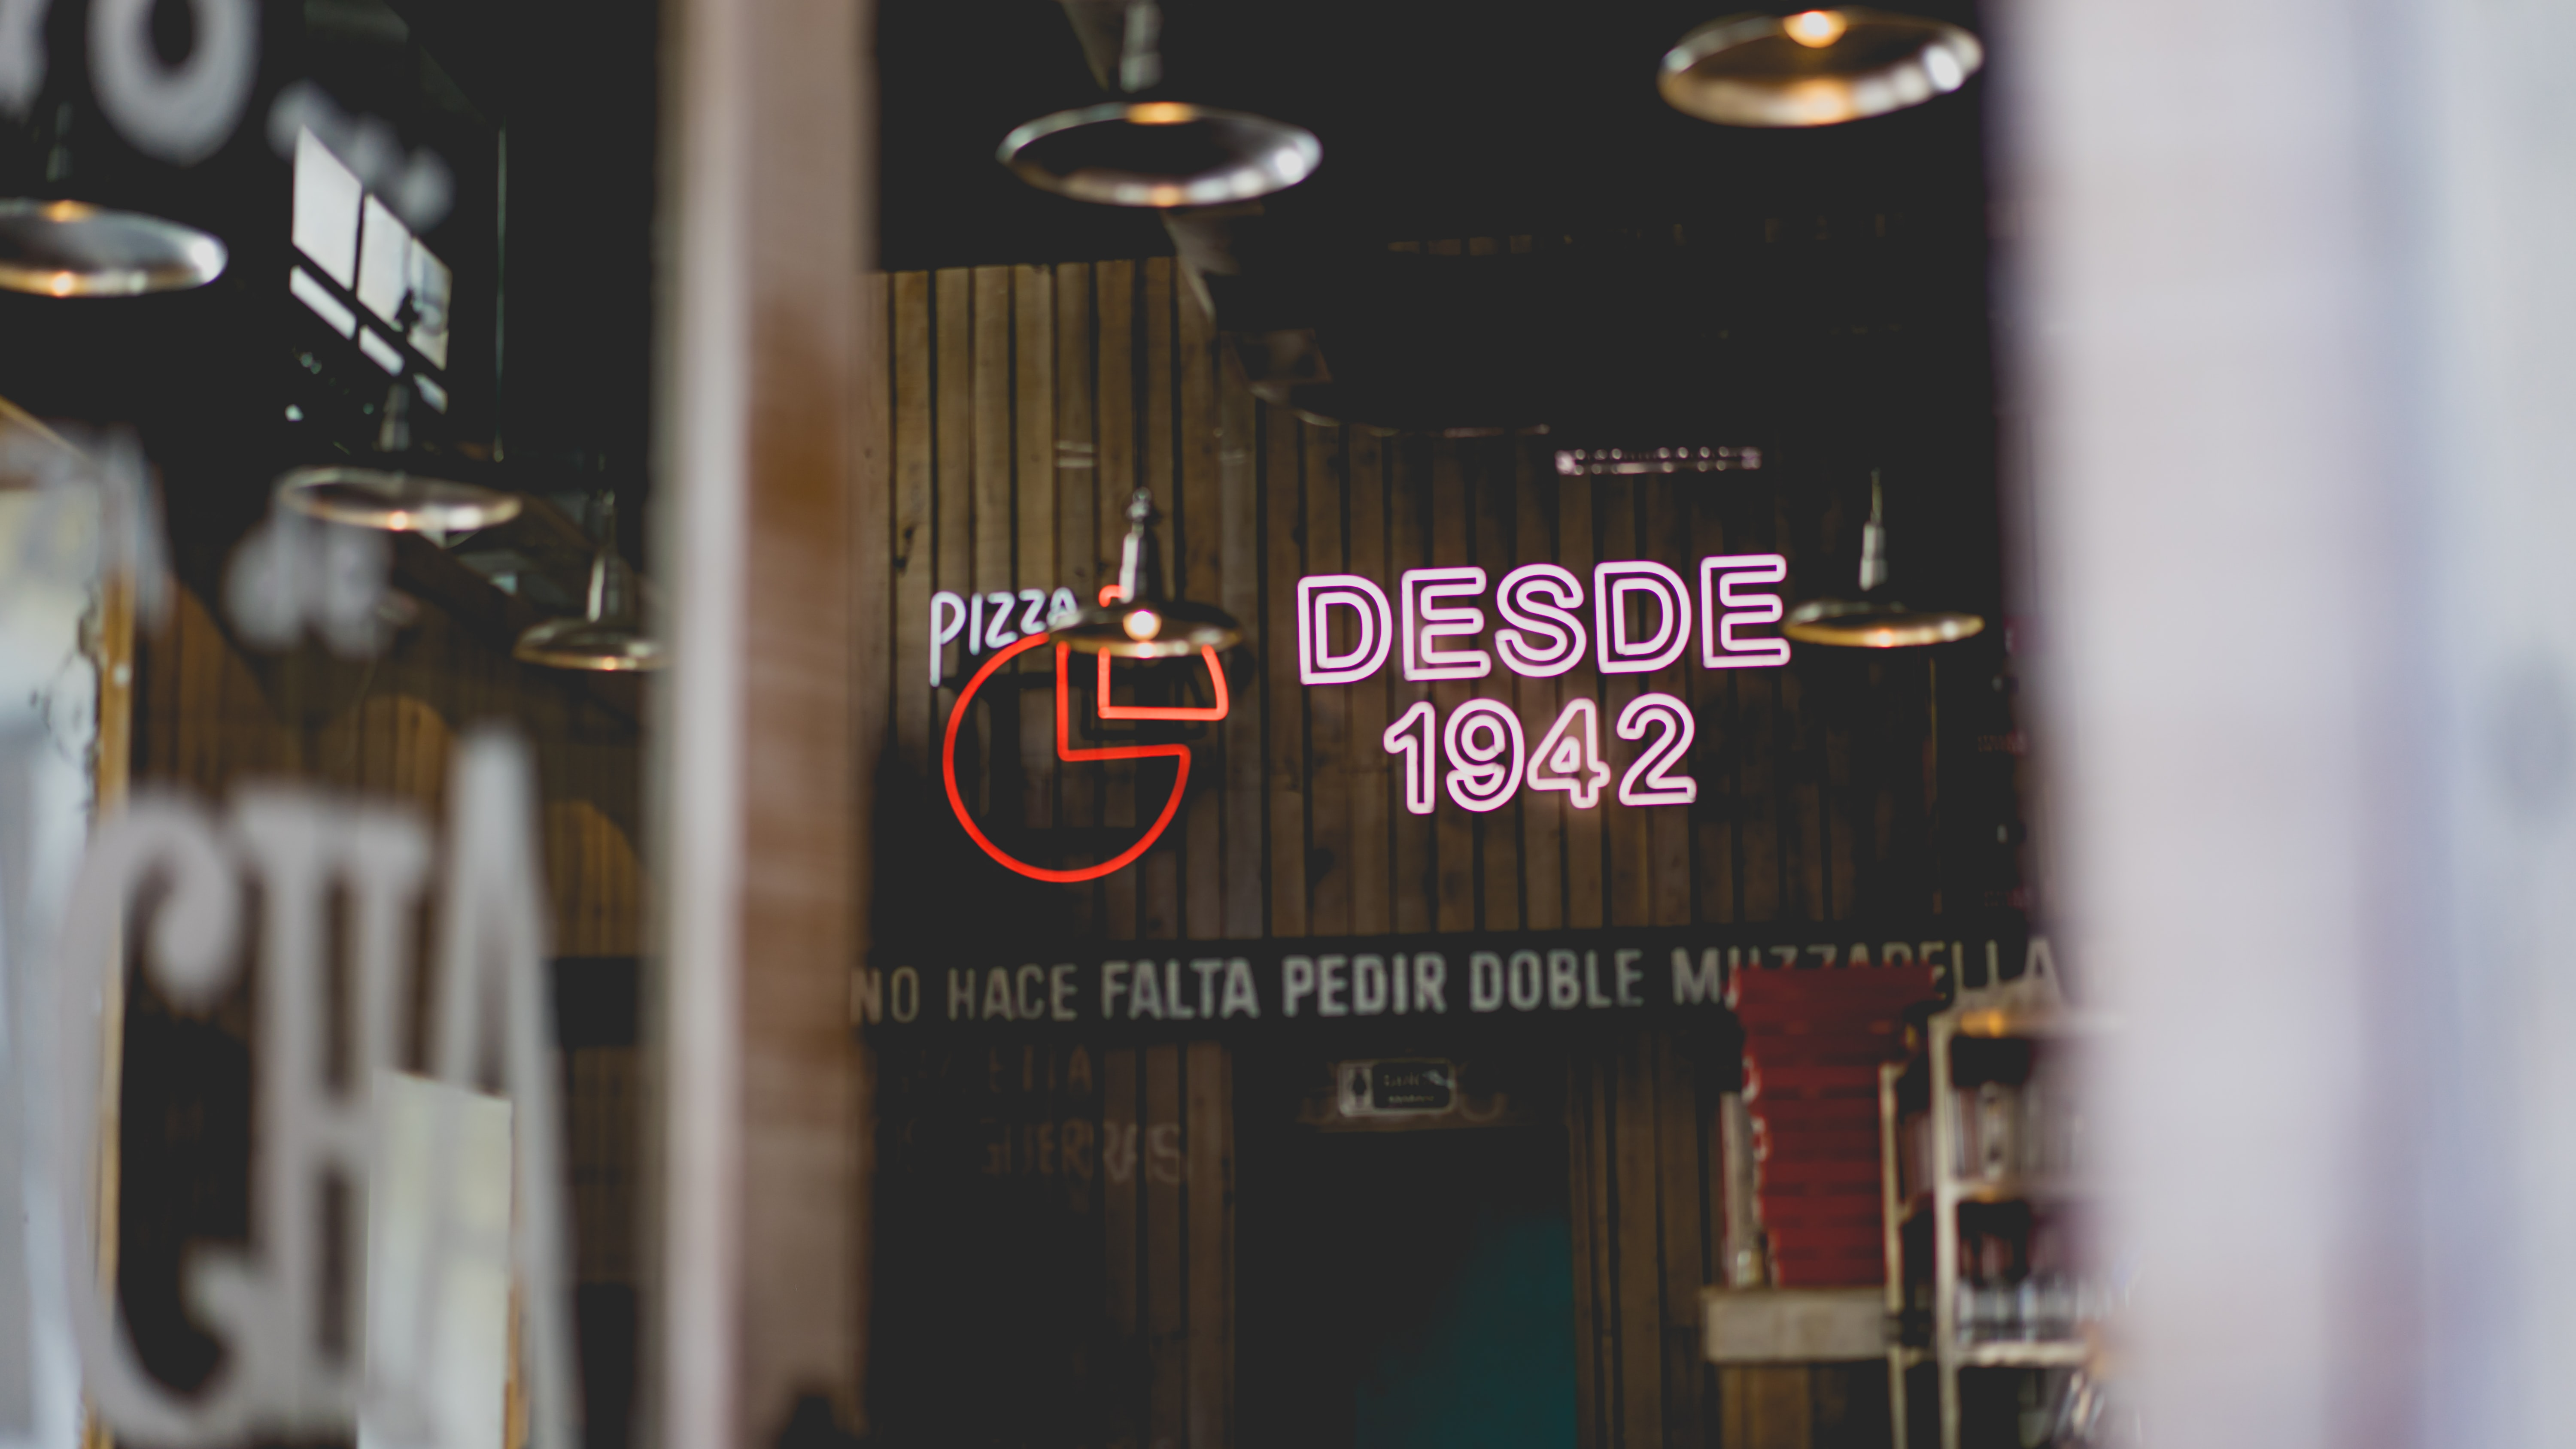 selective focus photo of desdes 1942 neon light signage